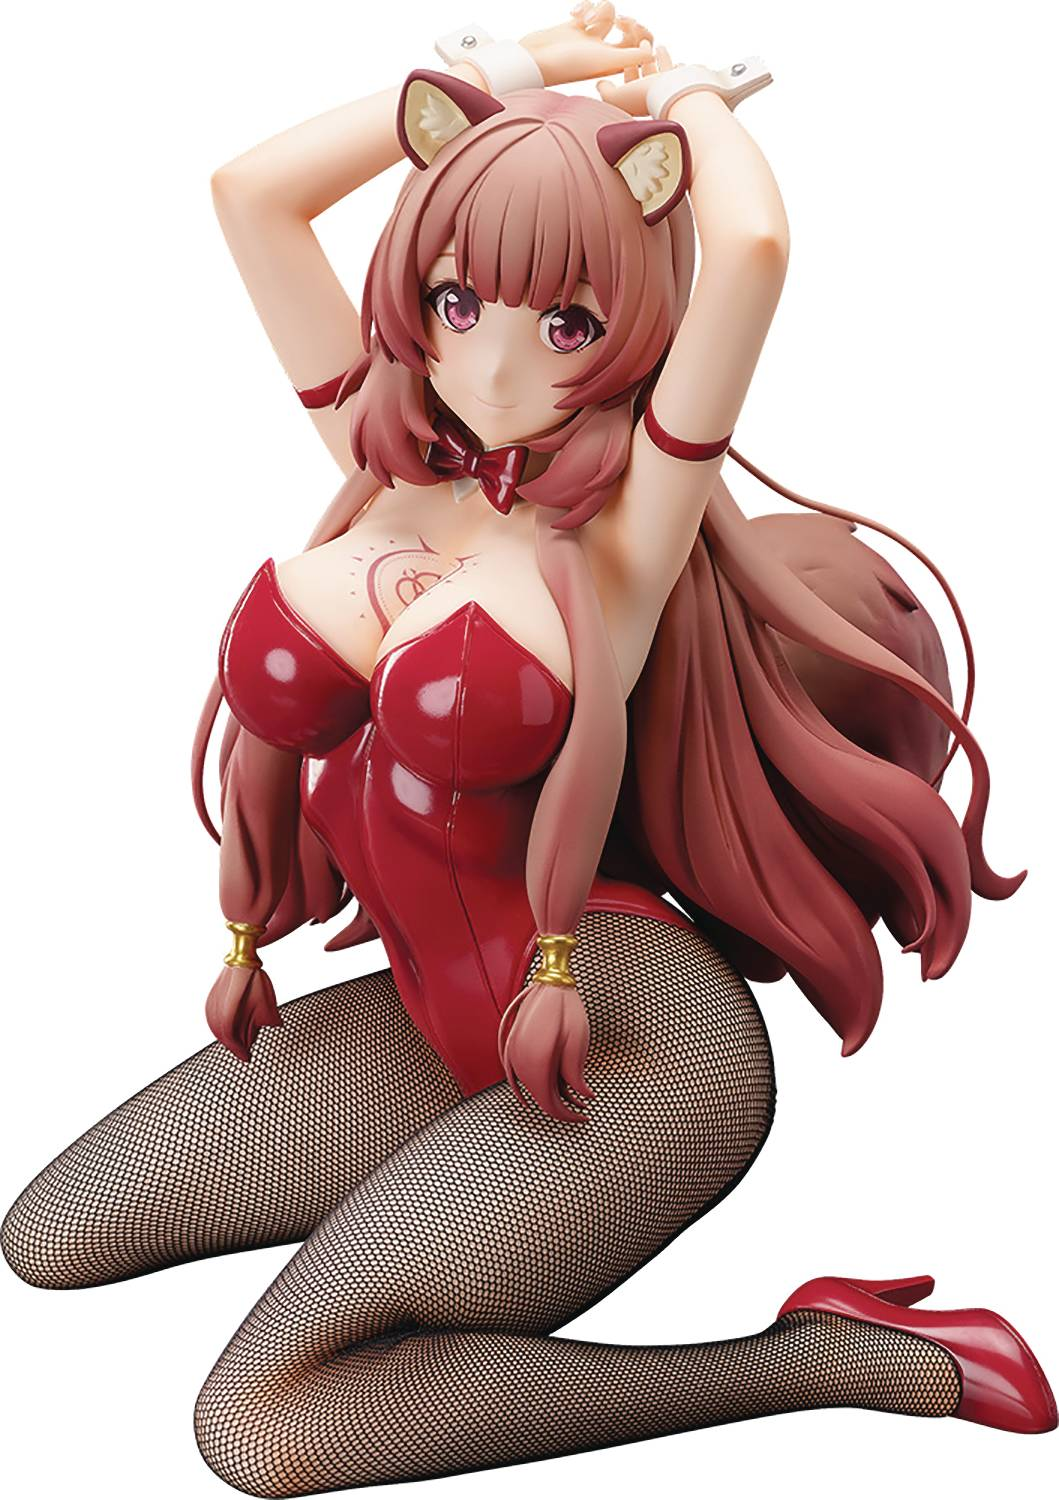 RISING OF SHIELD HERO RAPHTALIA 1/4 PVC FIG BUNNY STYLE VER